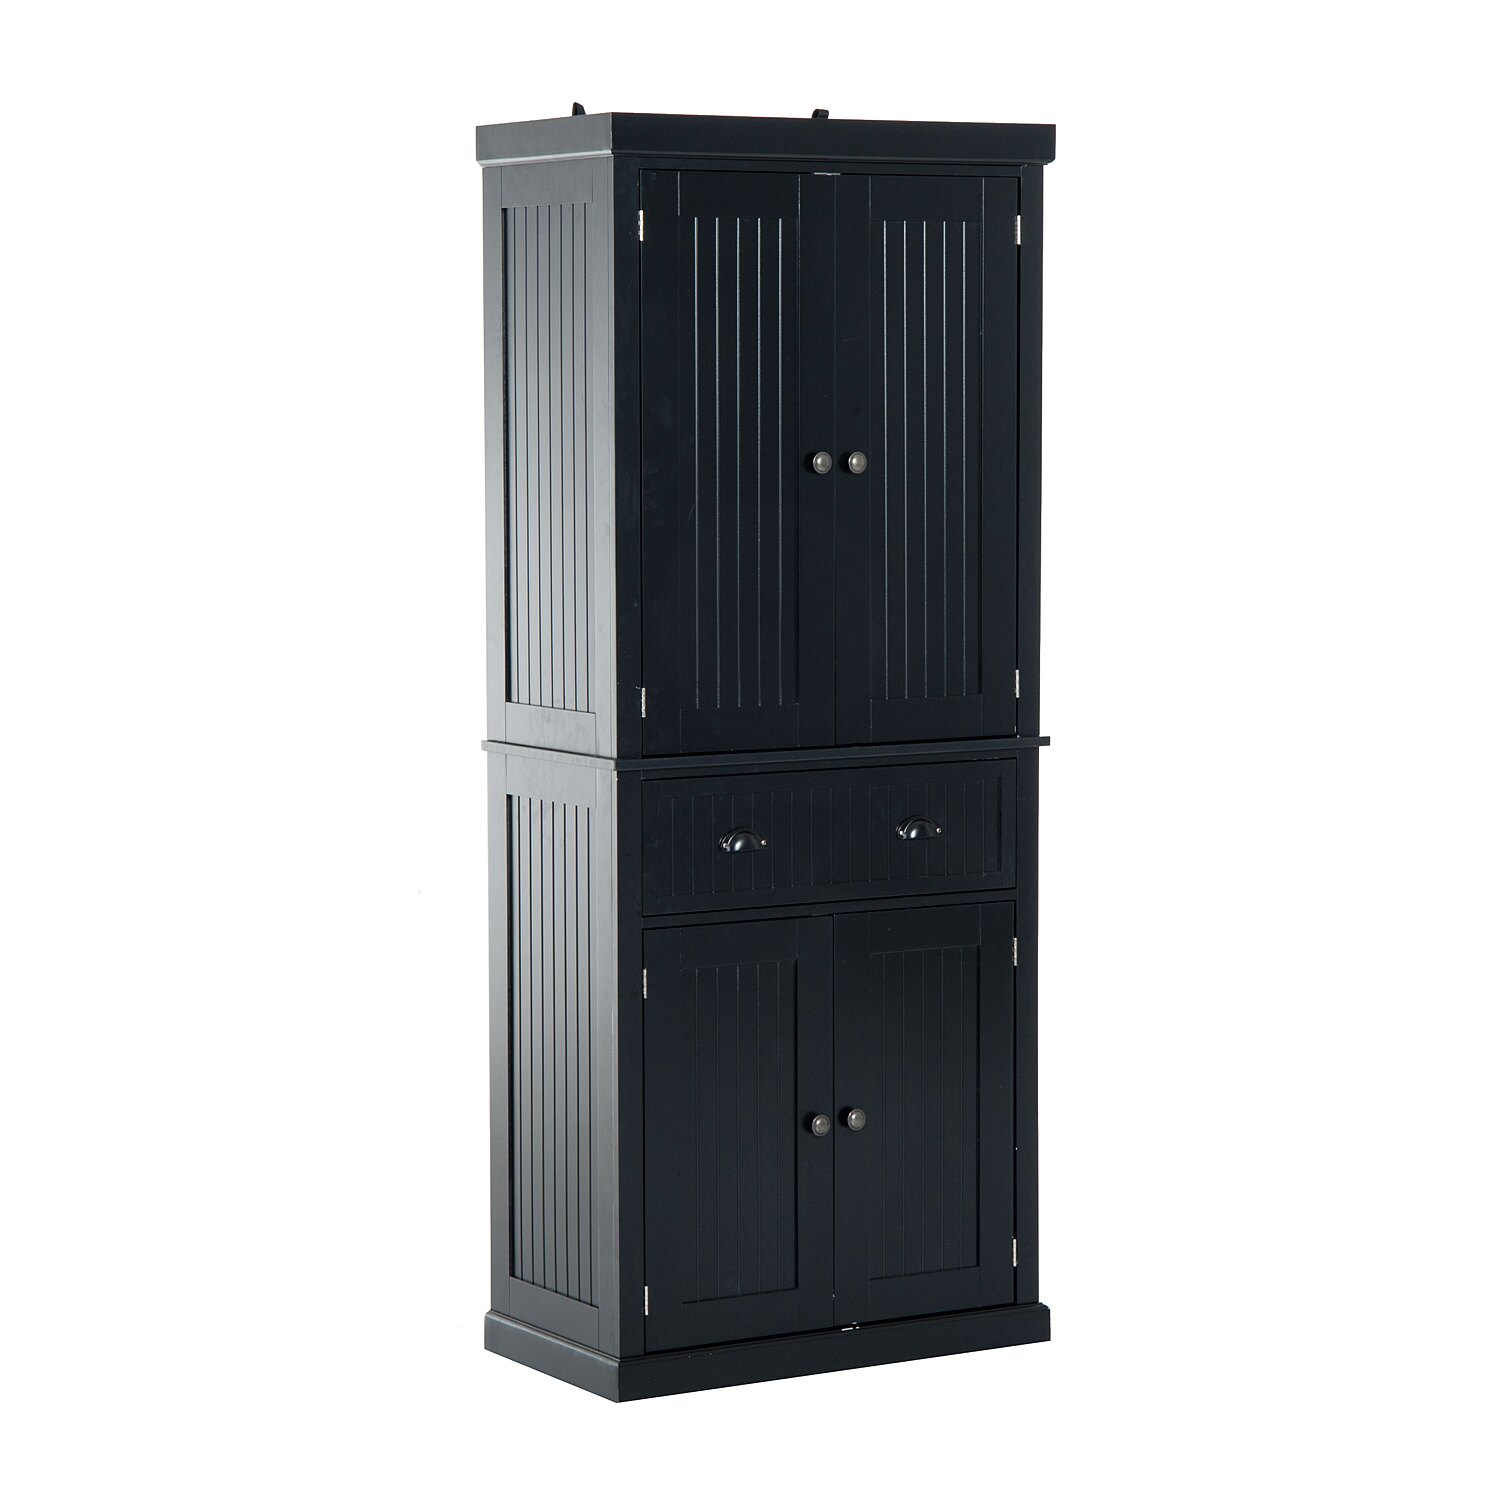 Aosom Homcom Large Free Standing Colonial Wood Storage